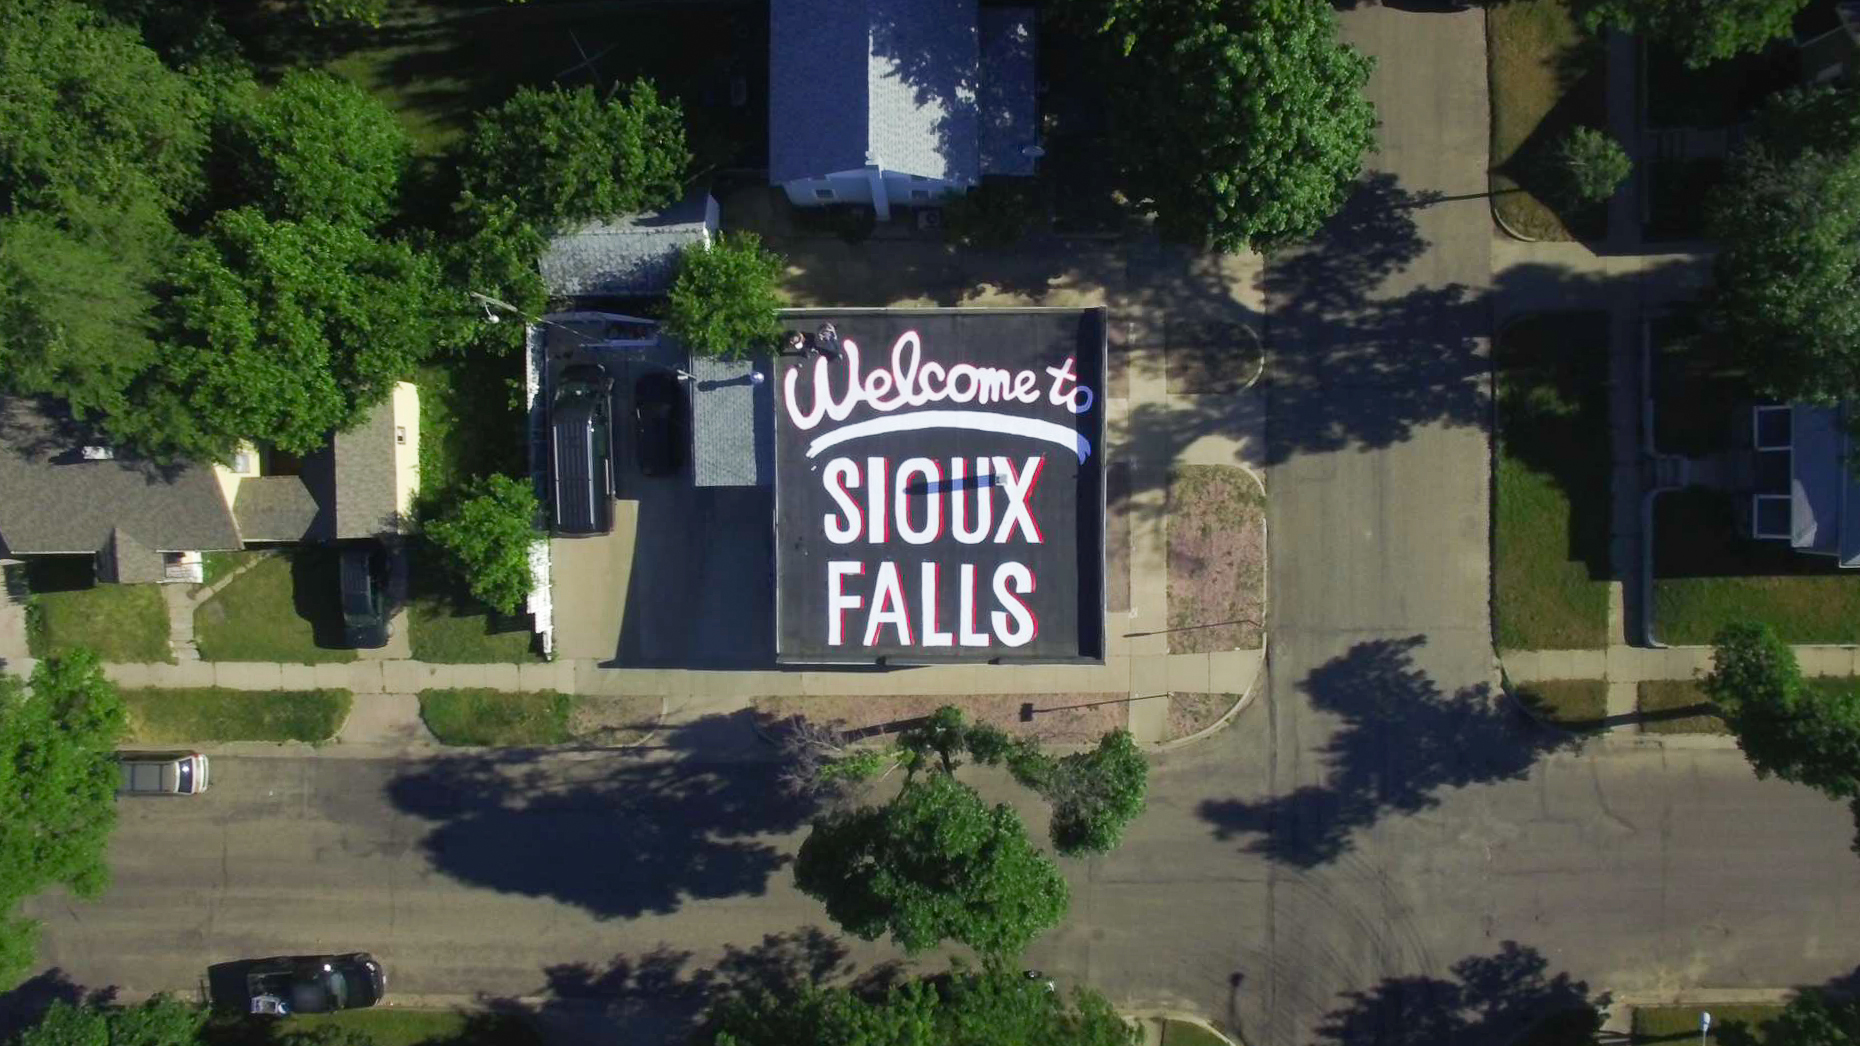 Local photographer creates Sioux Falls welcome on the roof of his building - Argus Leader